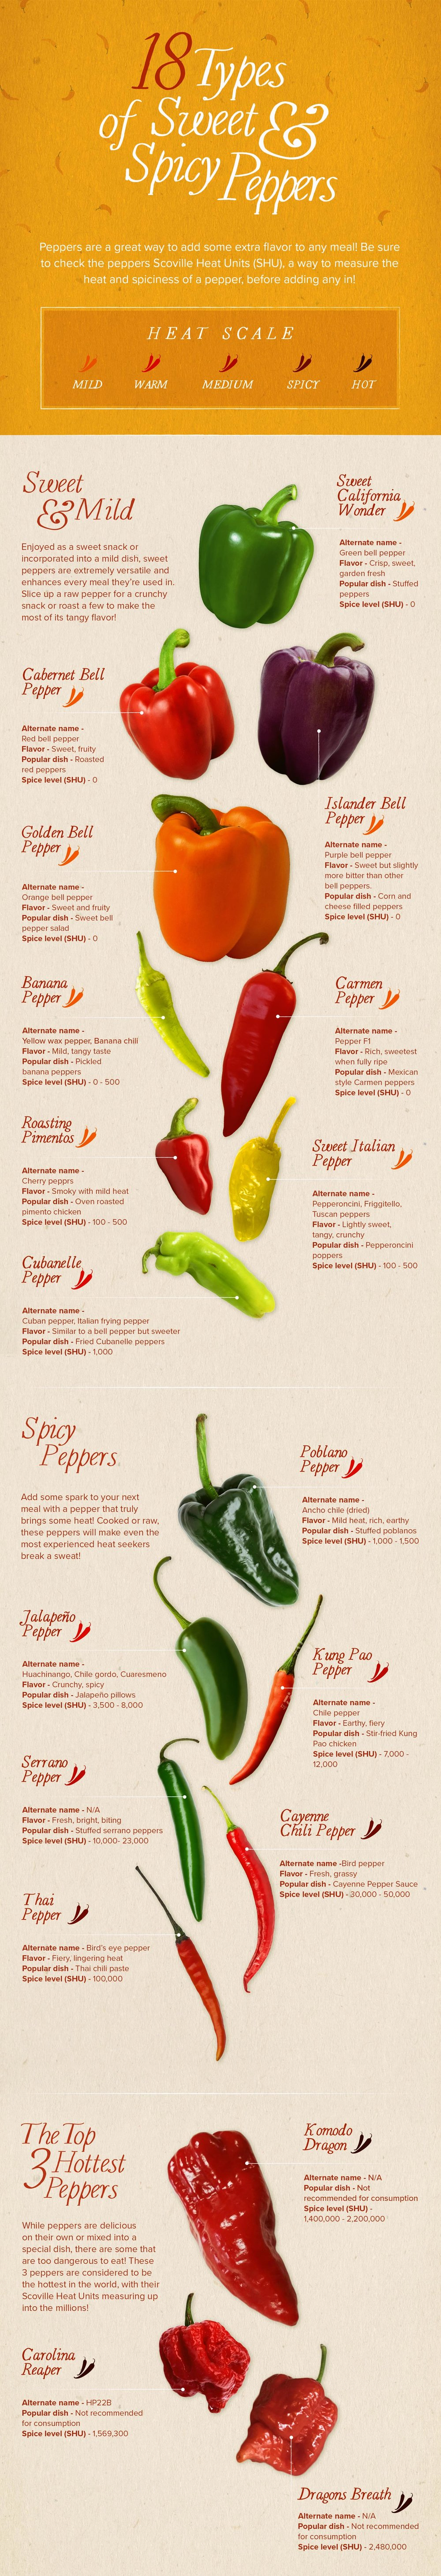 Types-of-Peppers.jpg